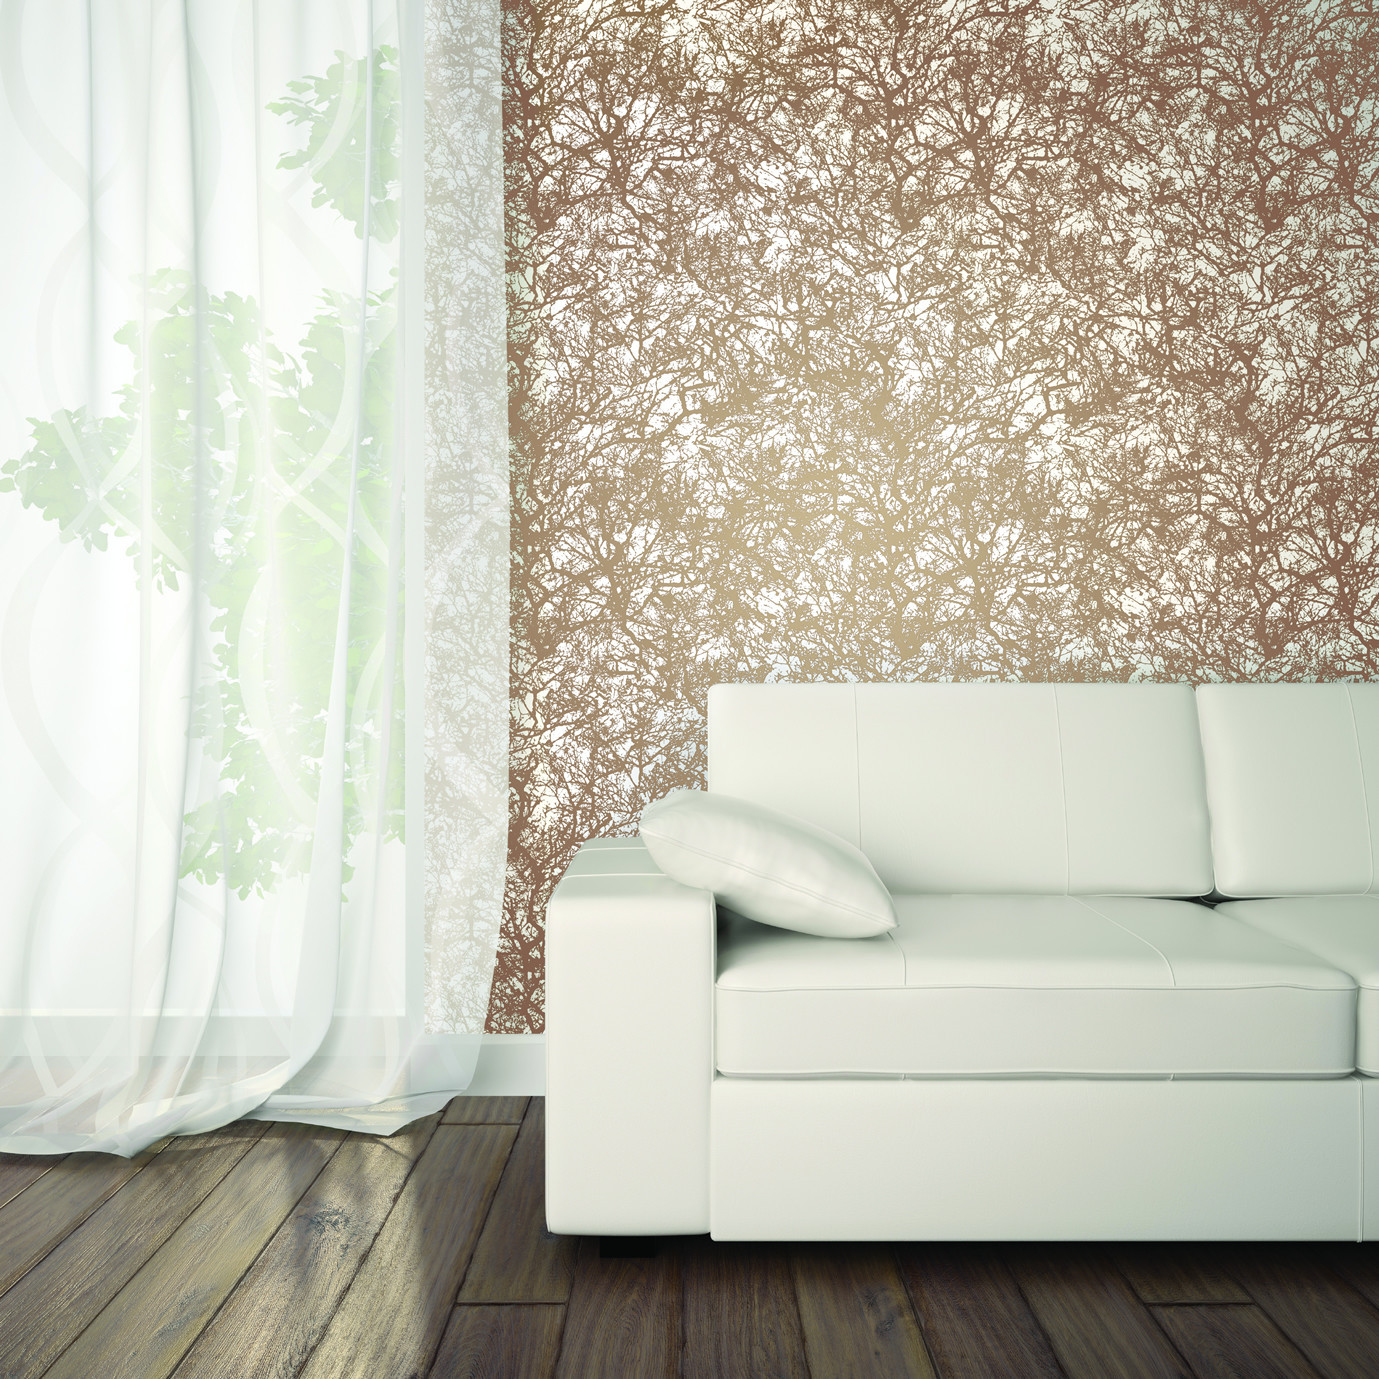 Forest Self Adhesive Wallpaper in Copper design by tempaper wallpaper matched with brown wooden floor plus white sofa for living room decor ideas